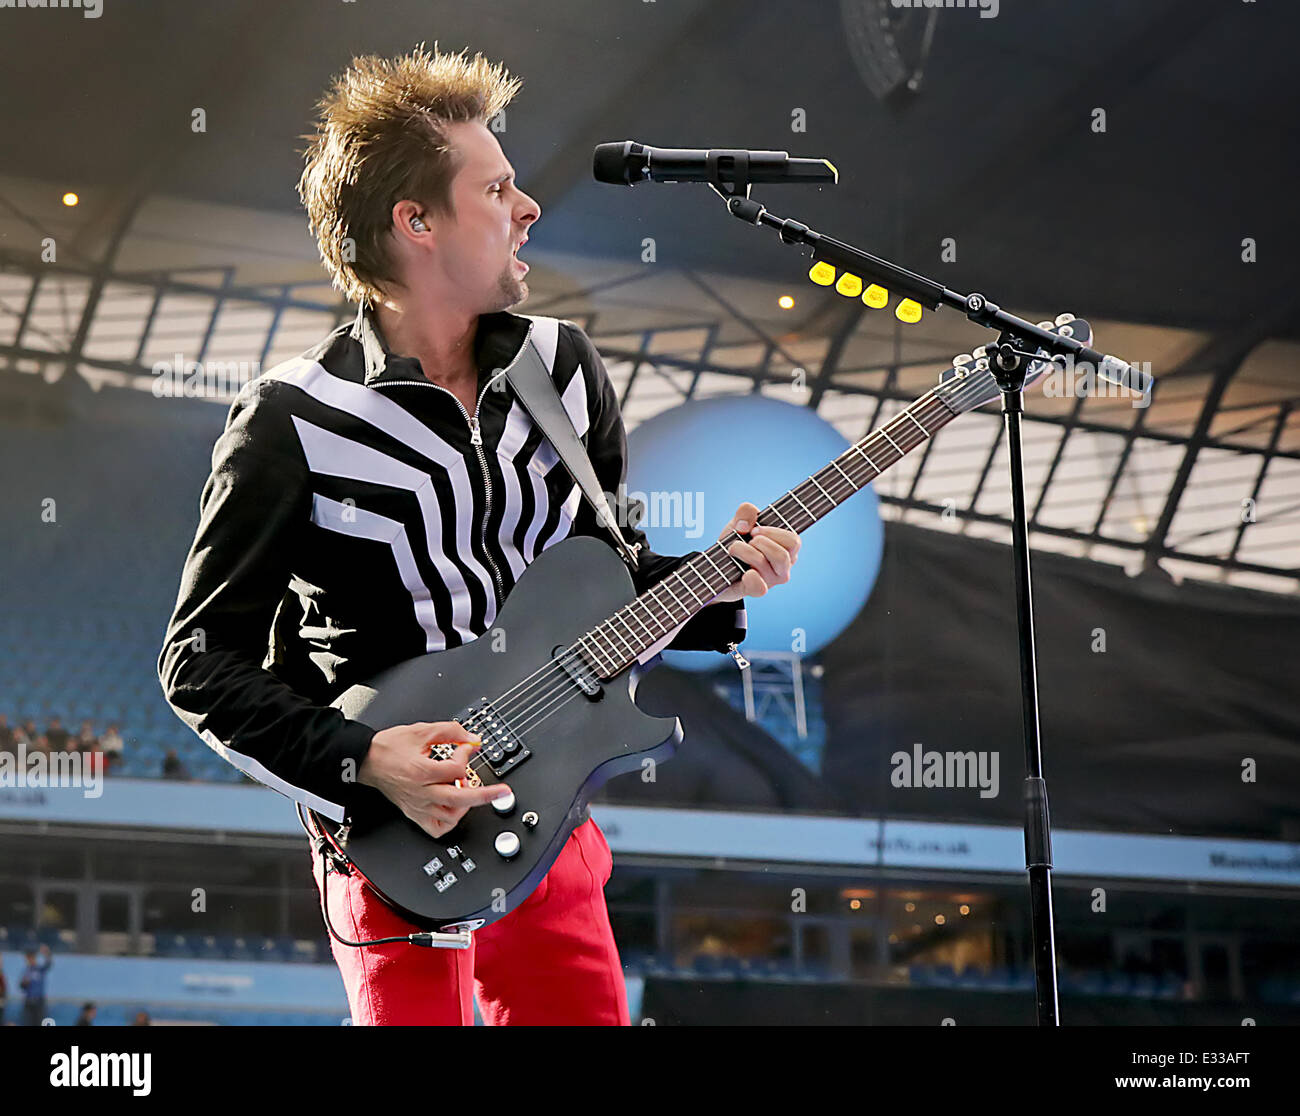 Muse performs live on their the 2nd law world tour at etihad stock muse performs live on their the 2nd law world tour at etihad stadium featuring matt bellamymuse where manchester england united kingdom when 01 jun voltagebd Image collections